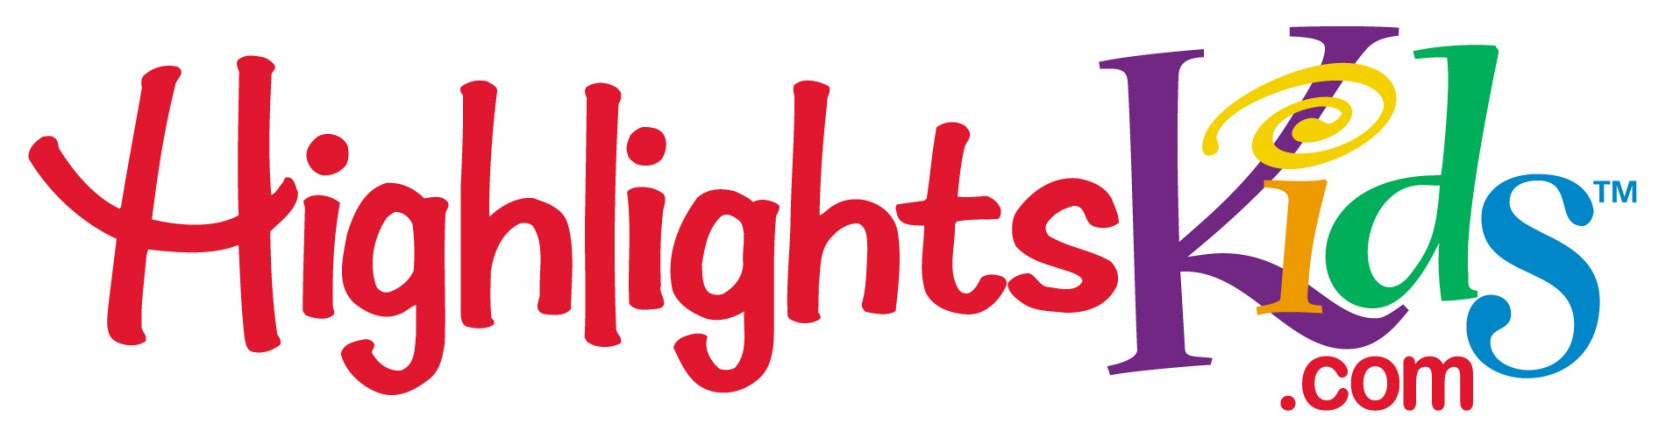 10.HighlightsKids_Logo